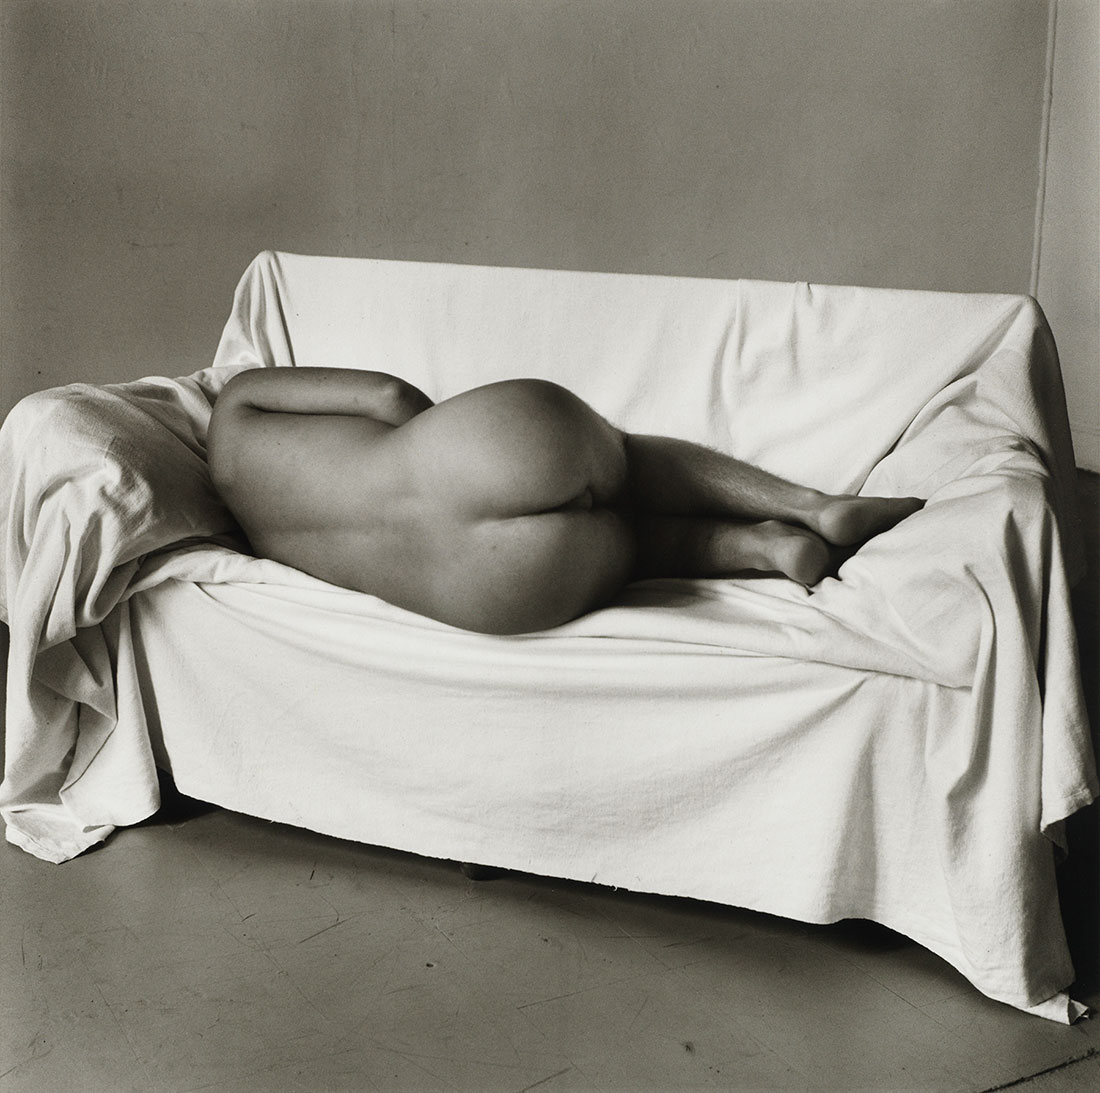 Reclining Nude on Couch<br />1978<br />Peter Hujar<br />Tirage gélatino-argentique, The Morgan Library & Museum, achat en 2013 grâce au Charina Endowment Fund<br />© Peter Hujar Archive, LLC, courtesy Pace/MacGill Gallery, New York and Fraenkel Gallery, San Francisco